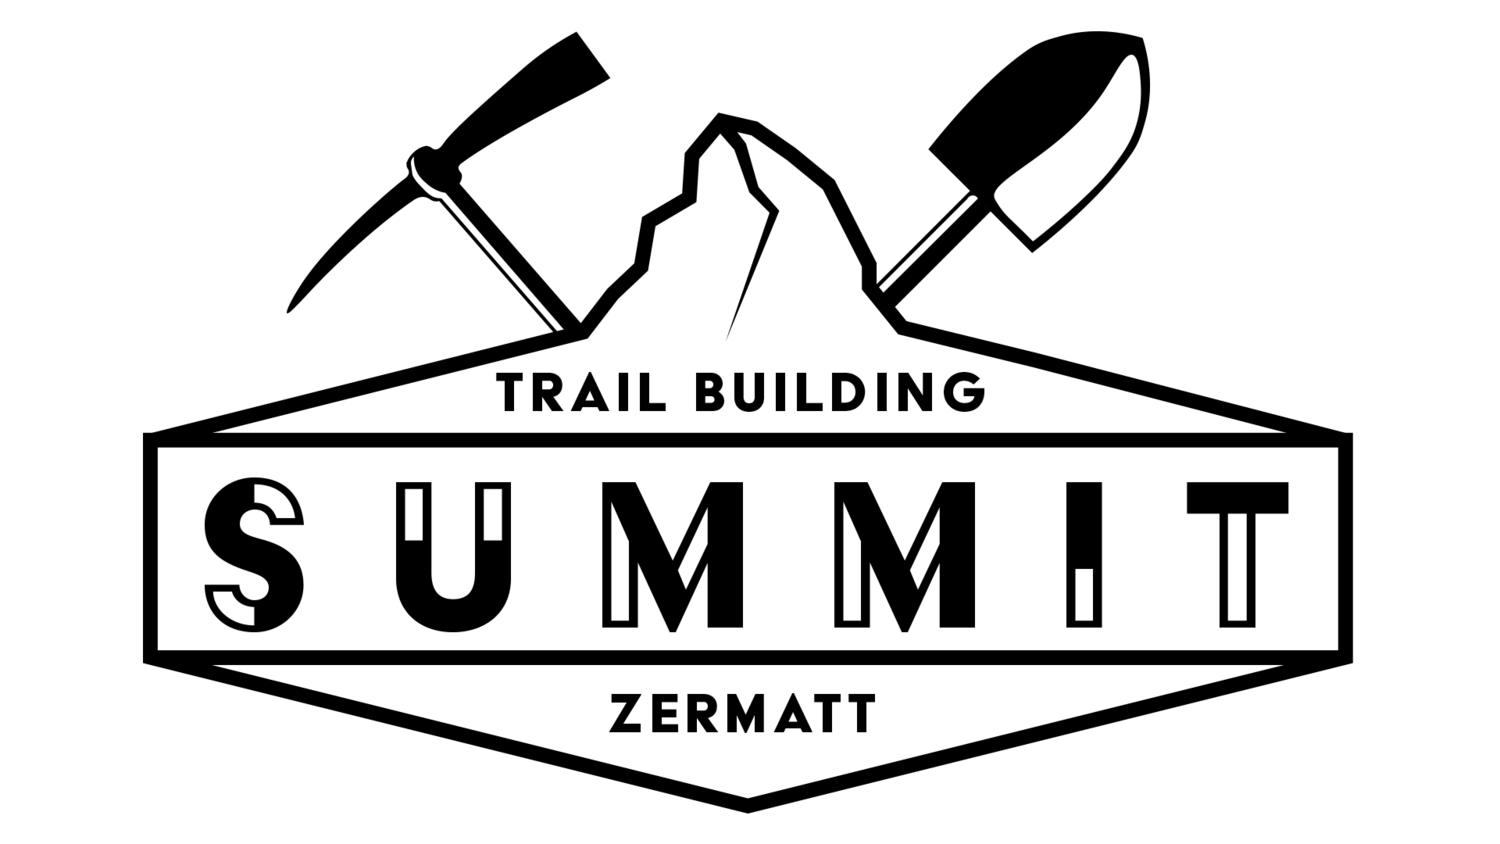 TRAIL BUILDING SUMMIT